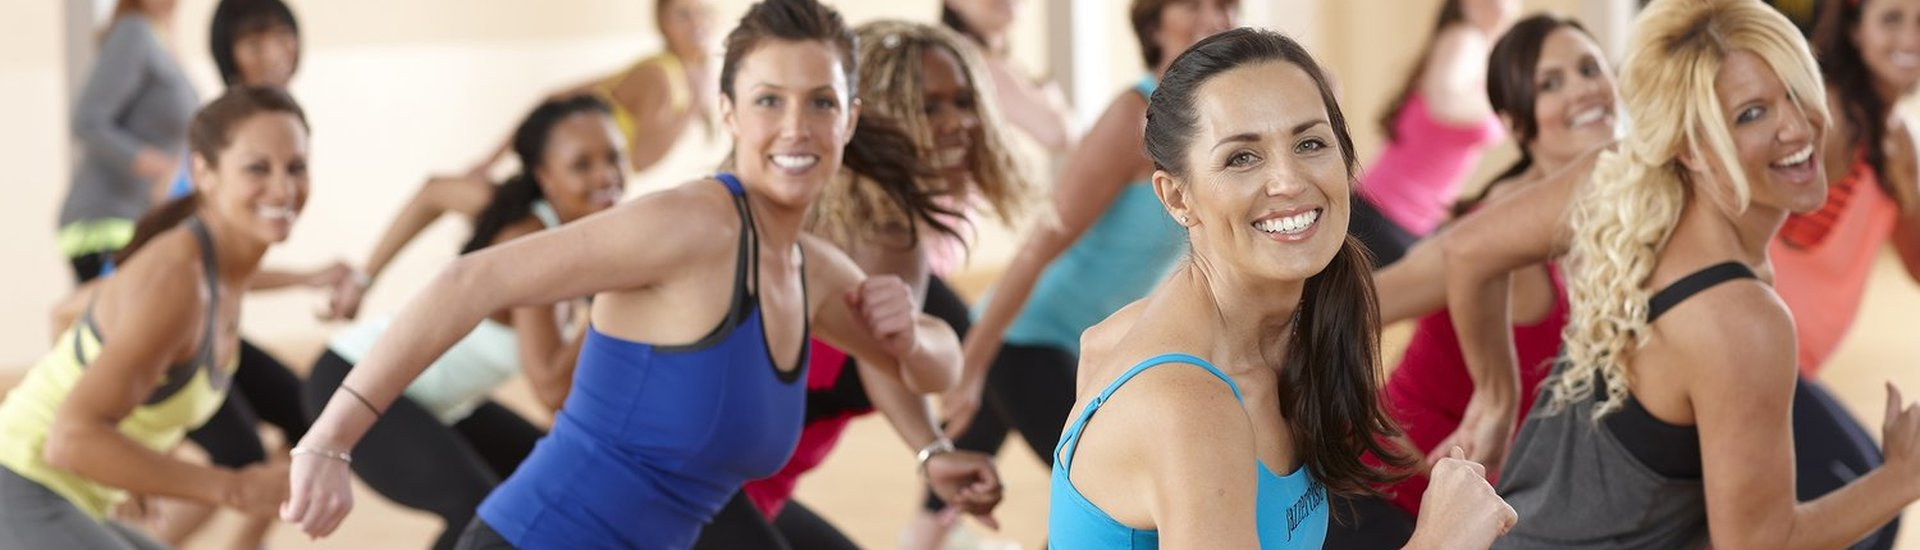 Club Interamnia | Anteprima Dance fitness